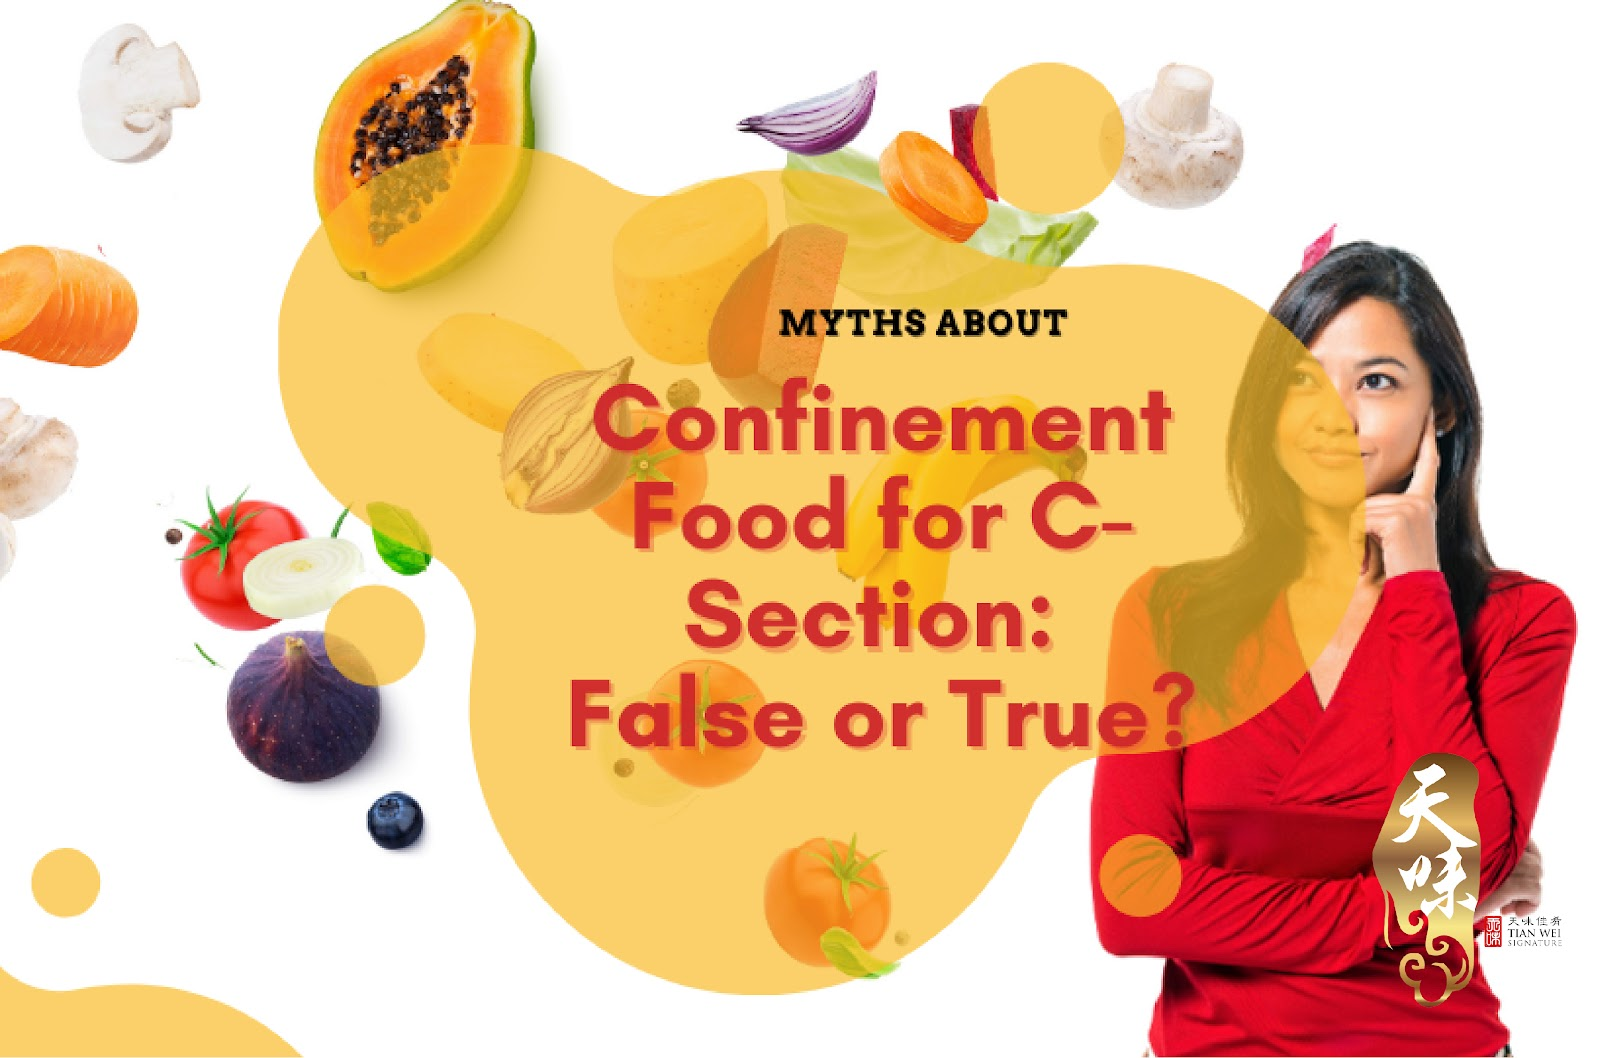 Myths About Confinement Food for C-Section: False or True?